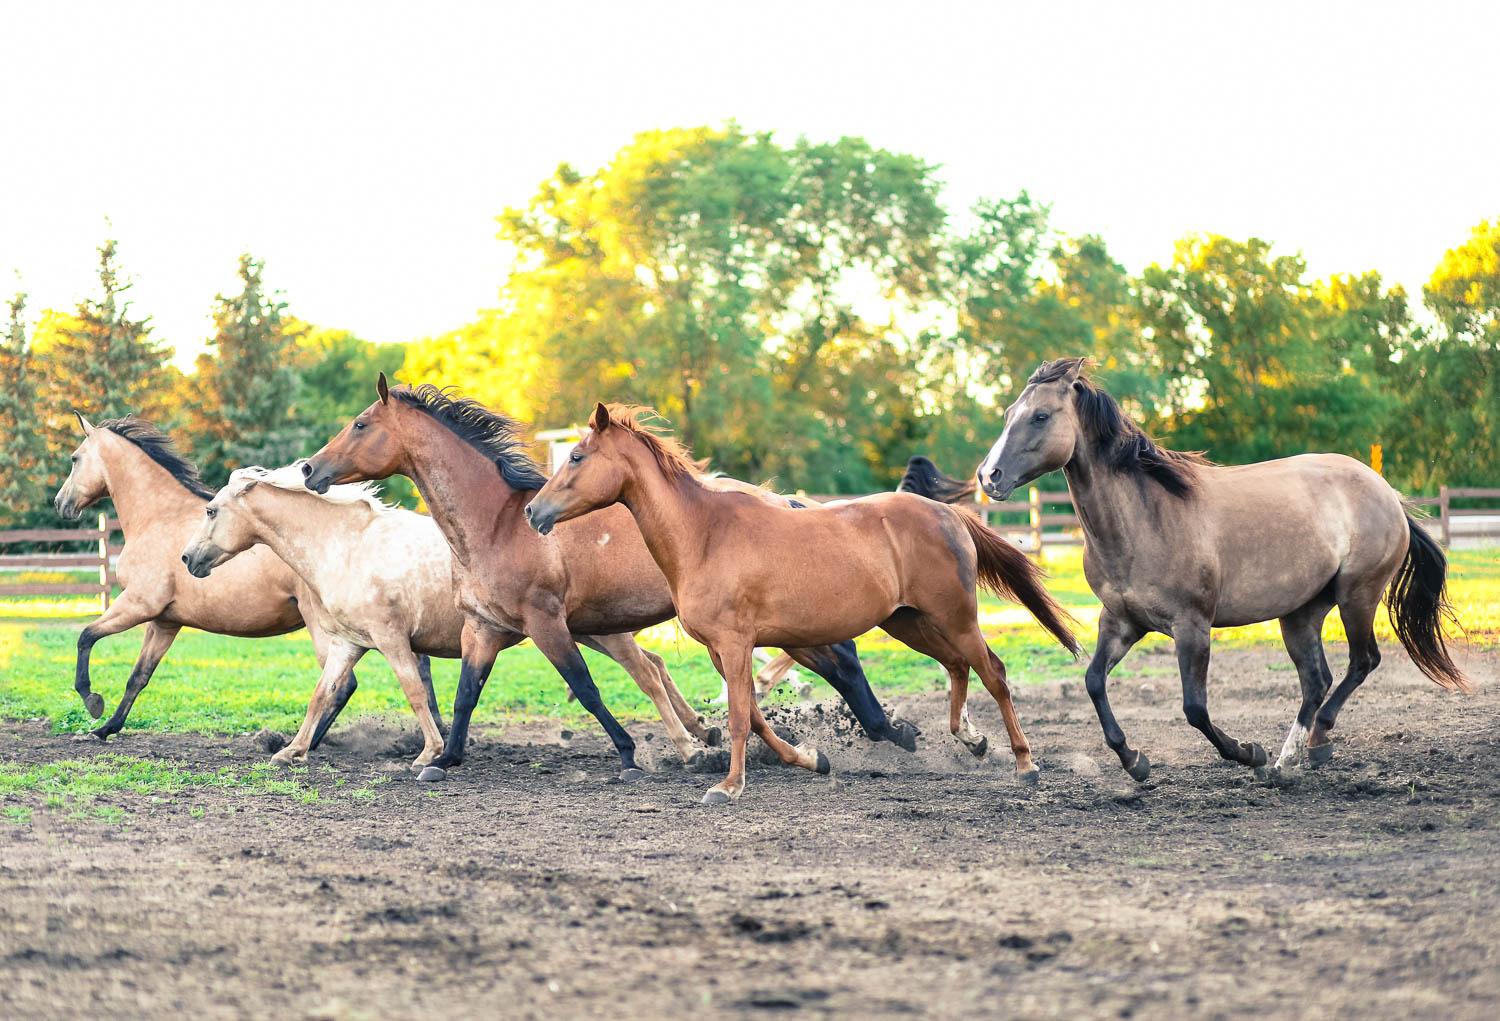 Horse photography Herd of horses running in pasture.